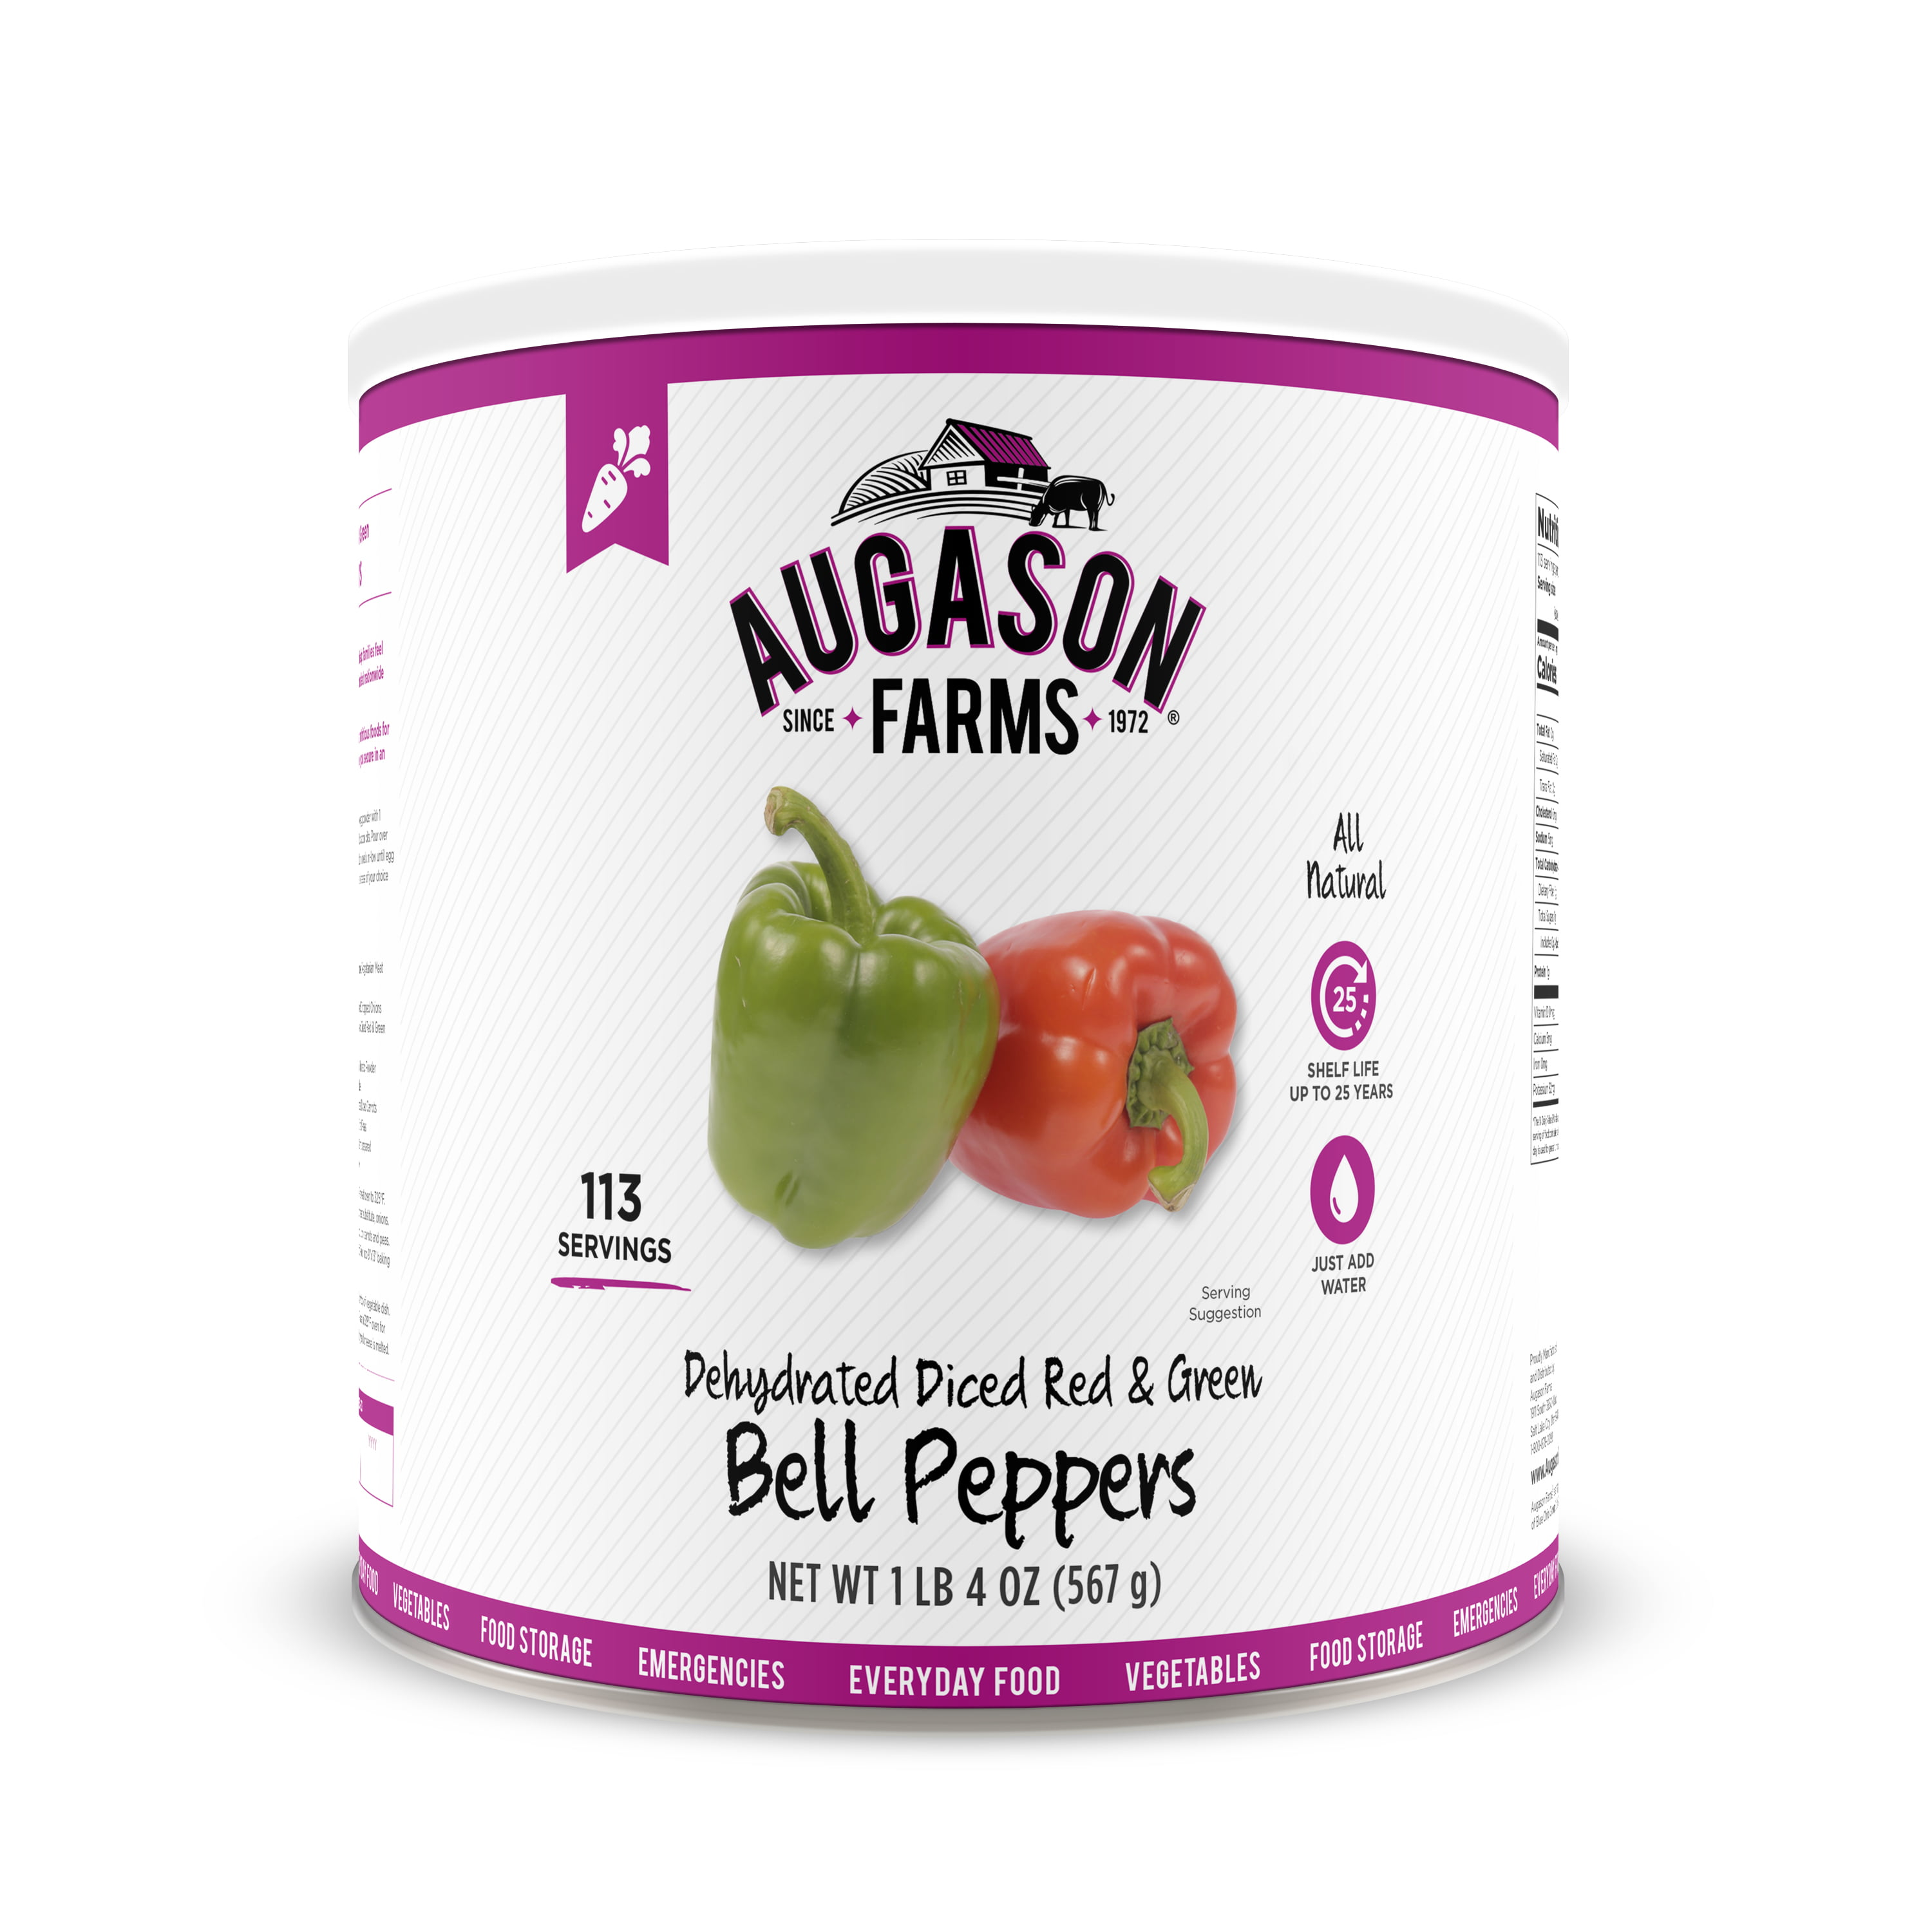 Augason Farms Dehydrated Diced Red & Green Bell Peppers 1 lb 4 oz No. 10 Can by Blue Chip Group